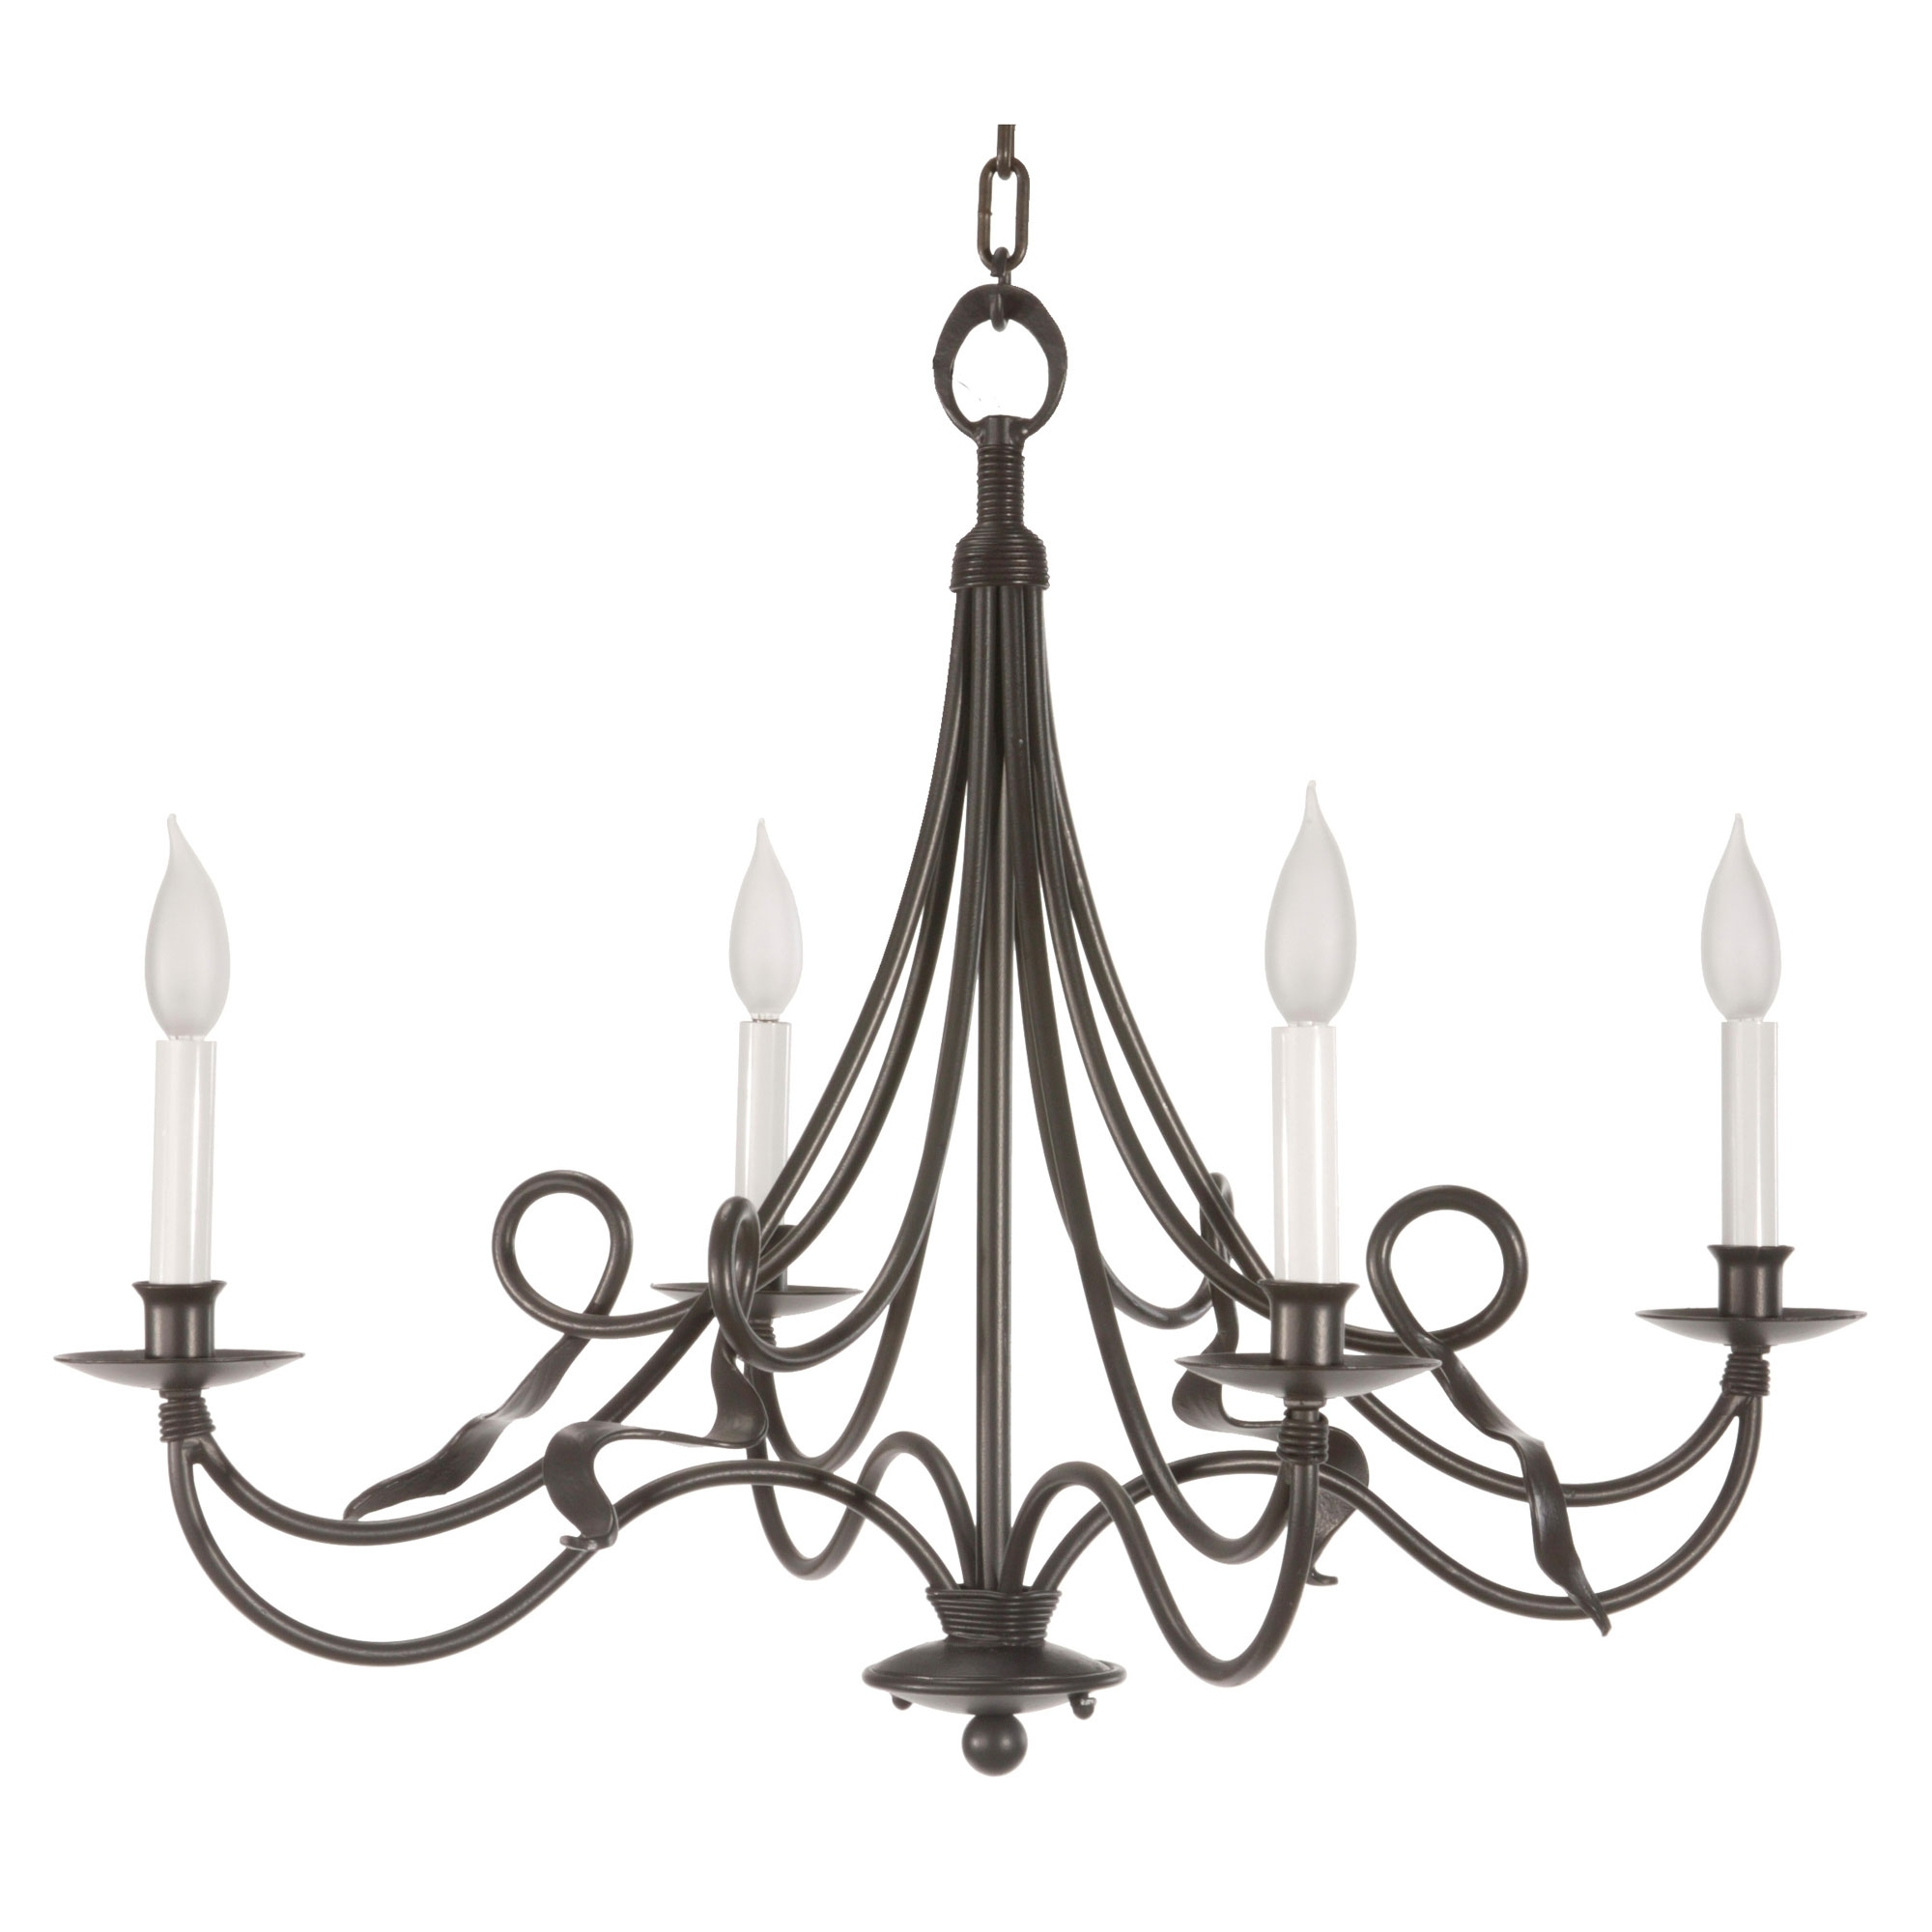 Black Color Rustic Cast Iron Chandeliers With Candle Holder For Intended For Large Iron Chandeliers (#2 of 12)